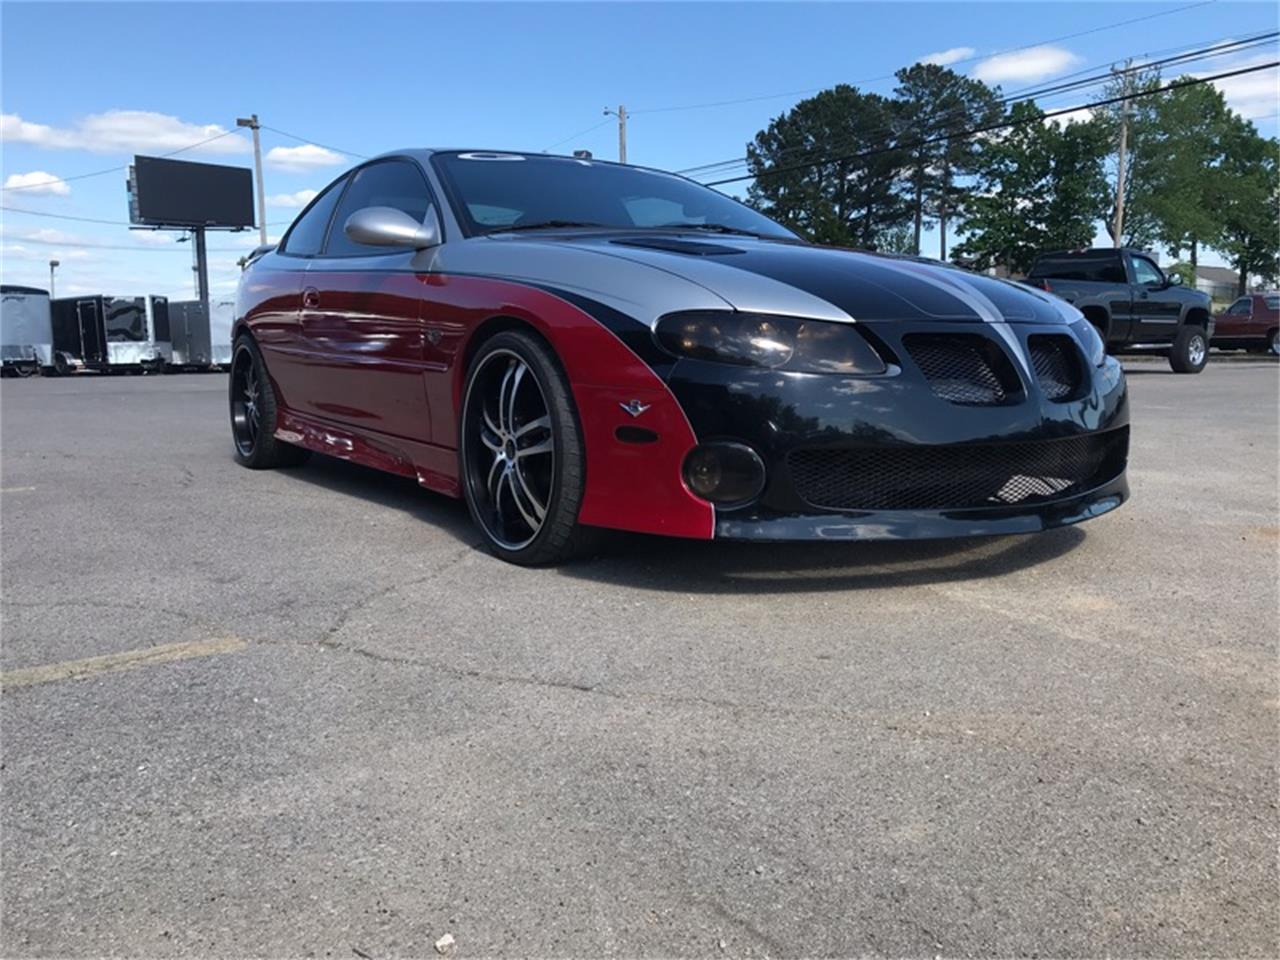 Large Picture of 2004 GTO located in Tennessee - $9,500.00 - Q3G4